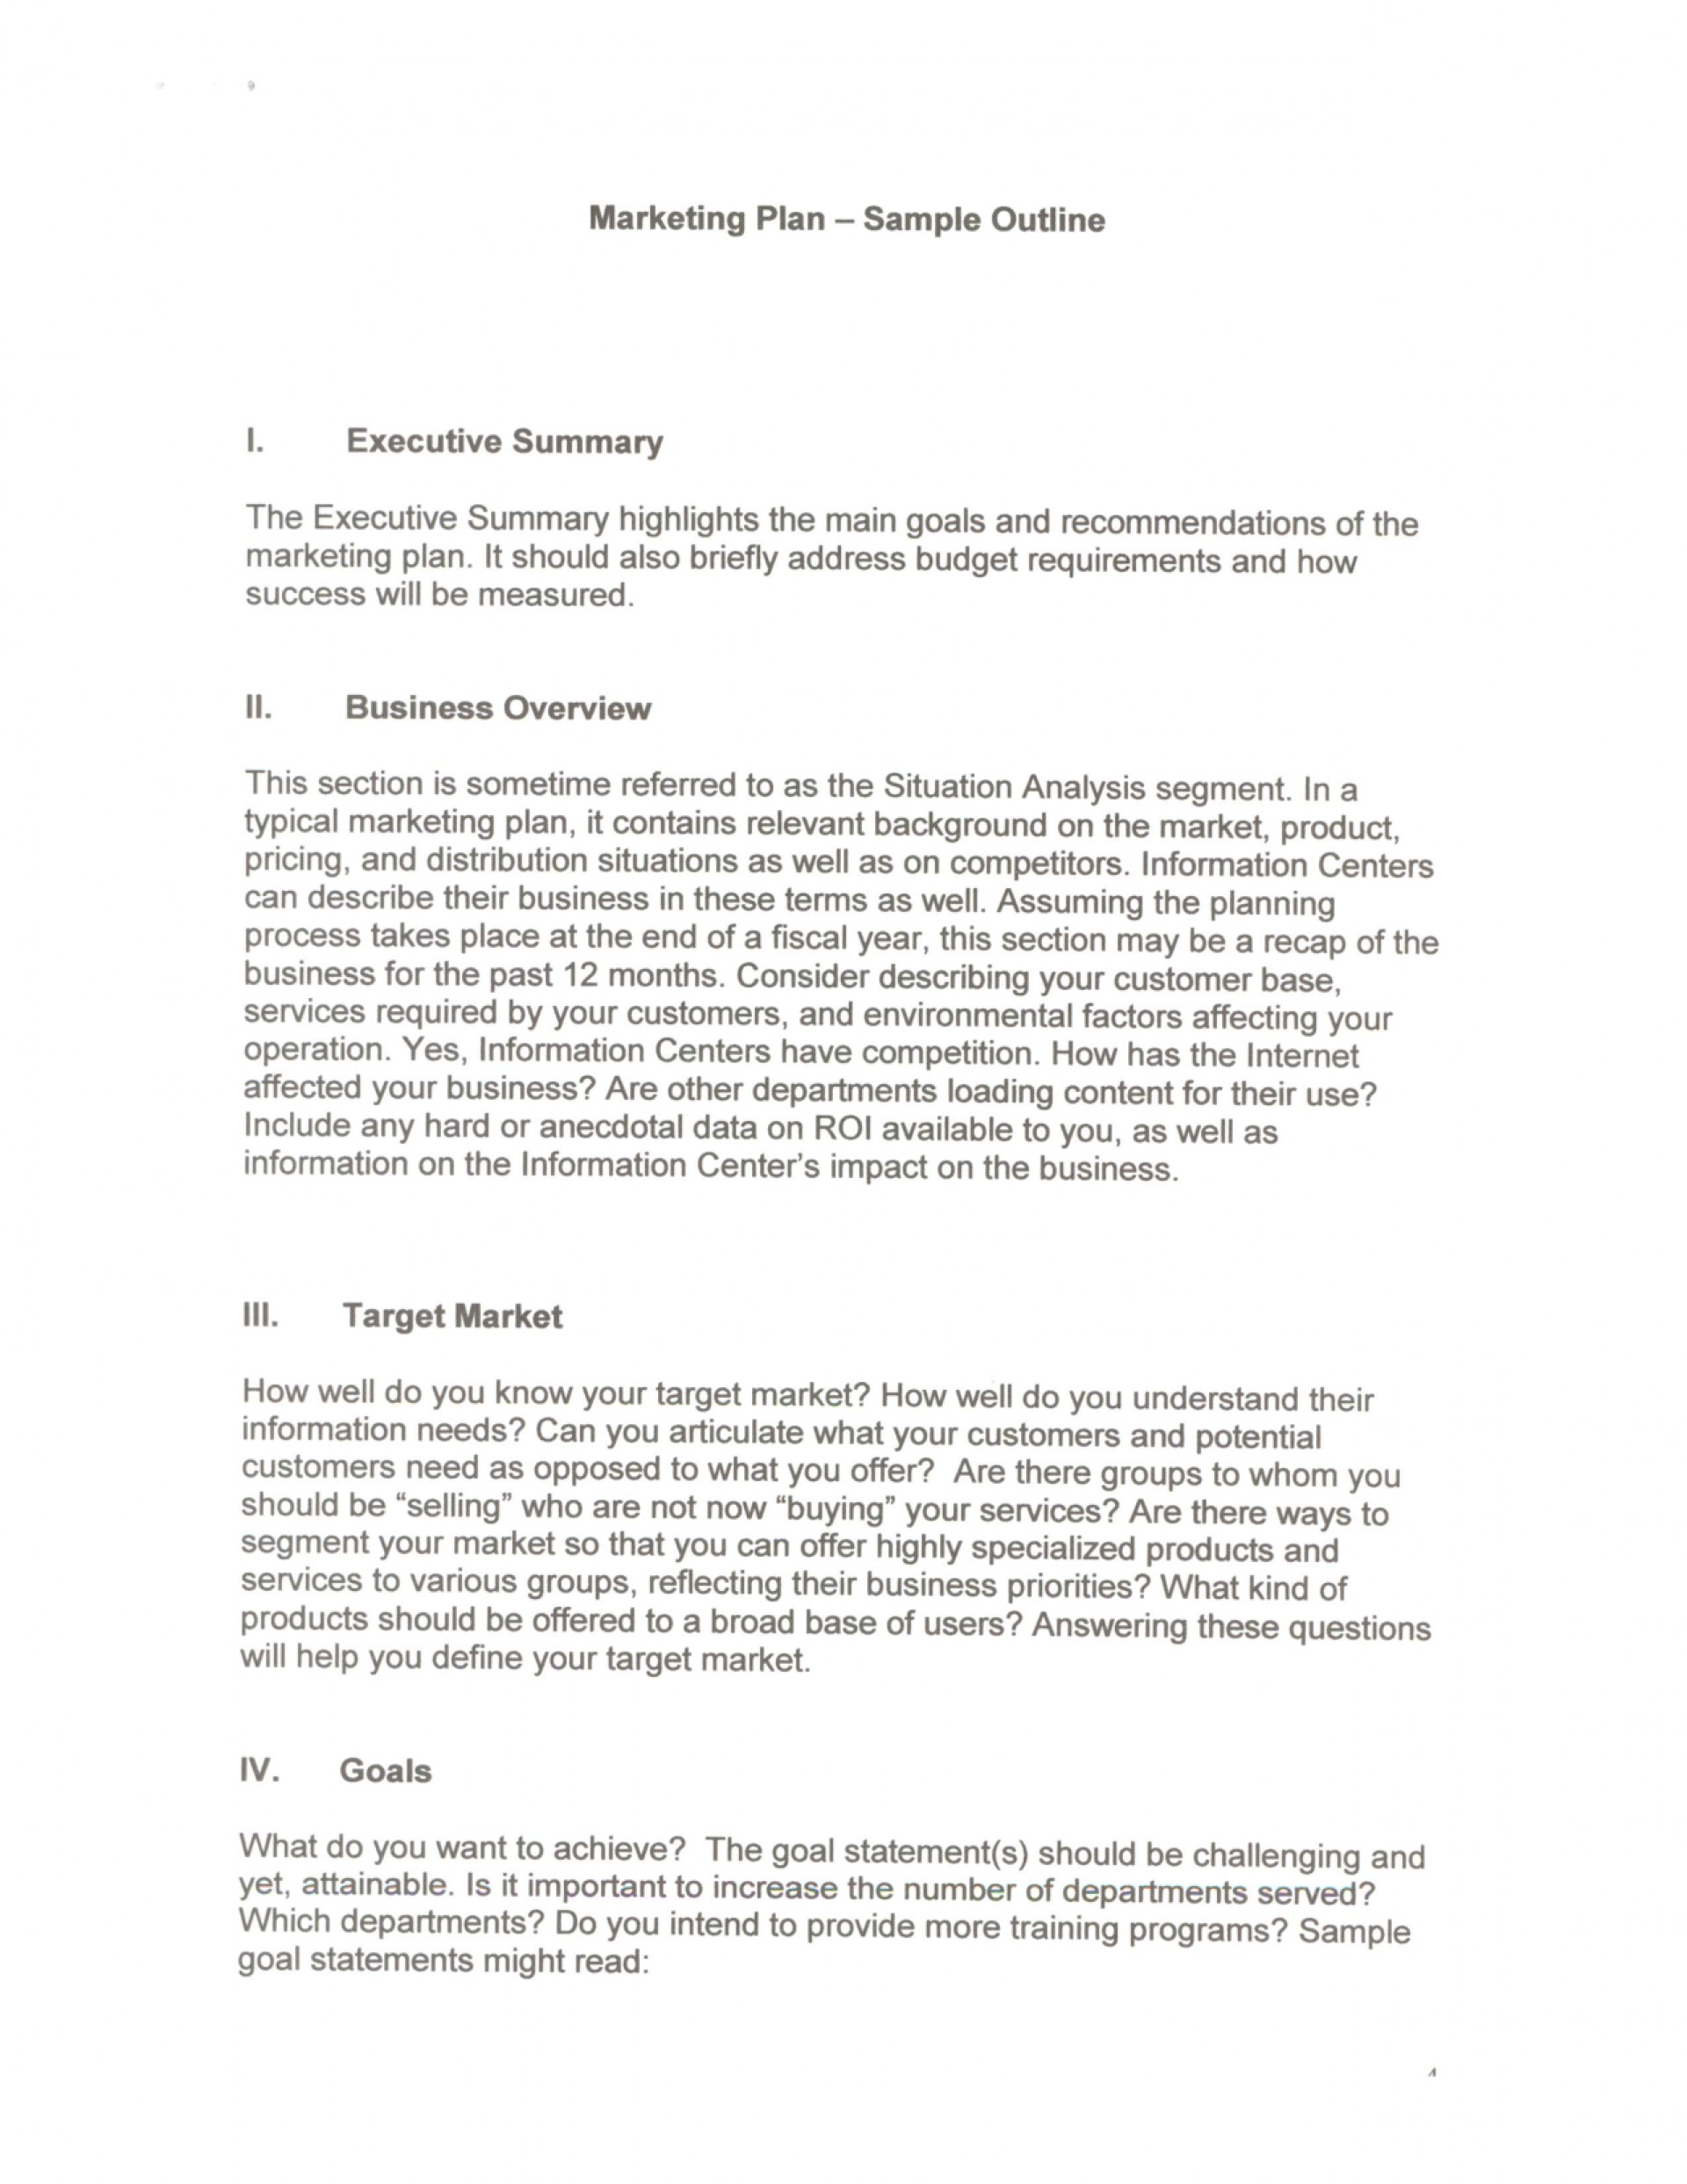 005 Executive Summary Research Paper Format Marketing Plan Example 384040 Imposing Apa 1920